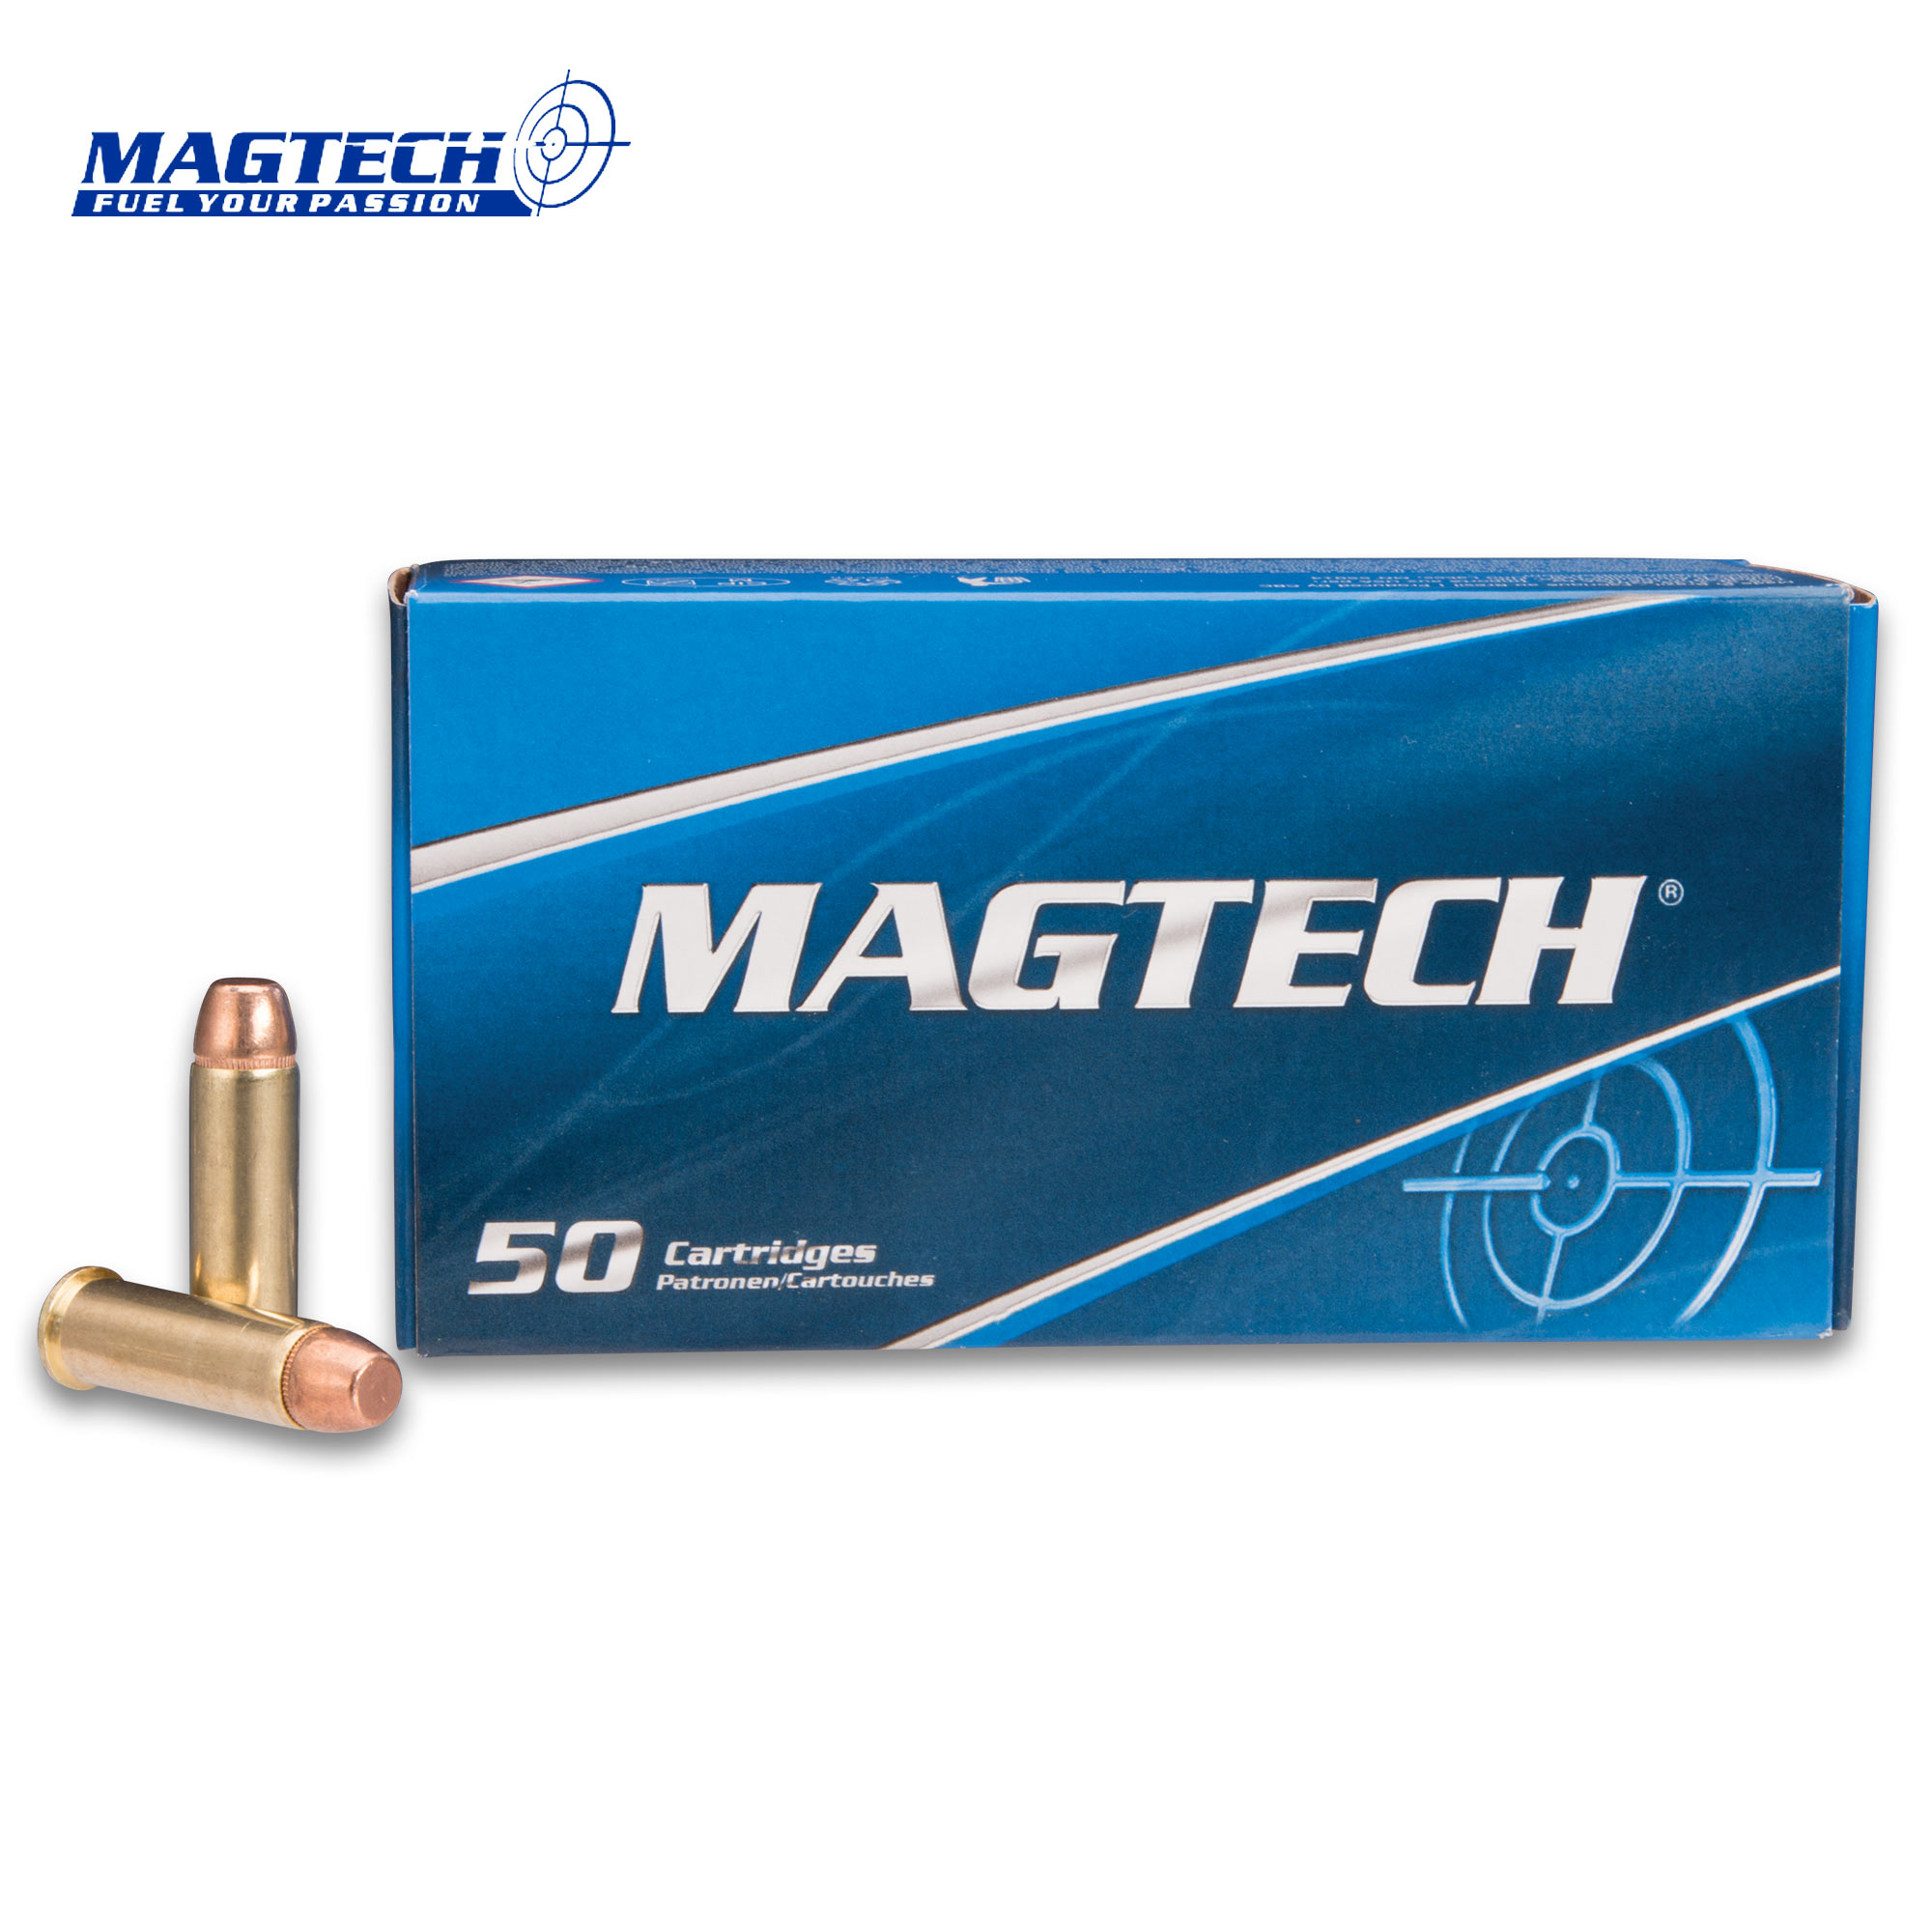 Magtech  38 Special / 158gr Smith & Wesson (S&W) Full Metal Jacket